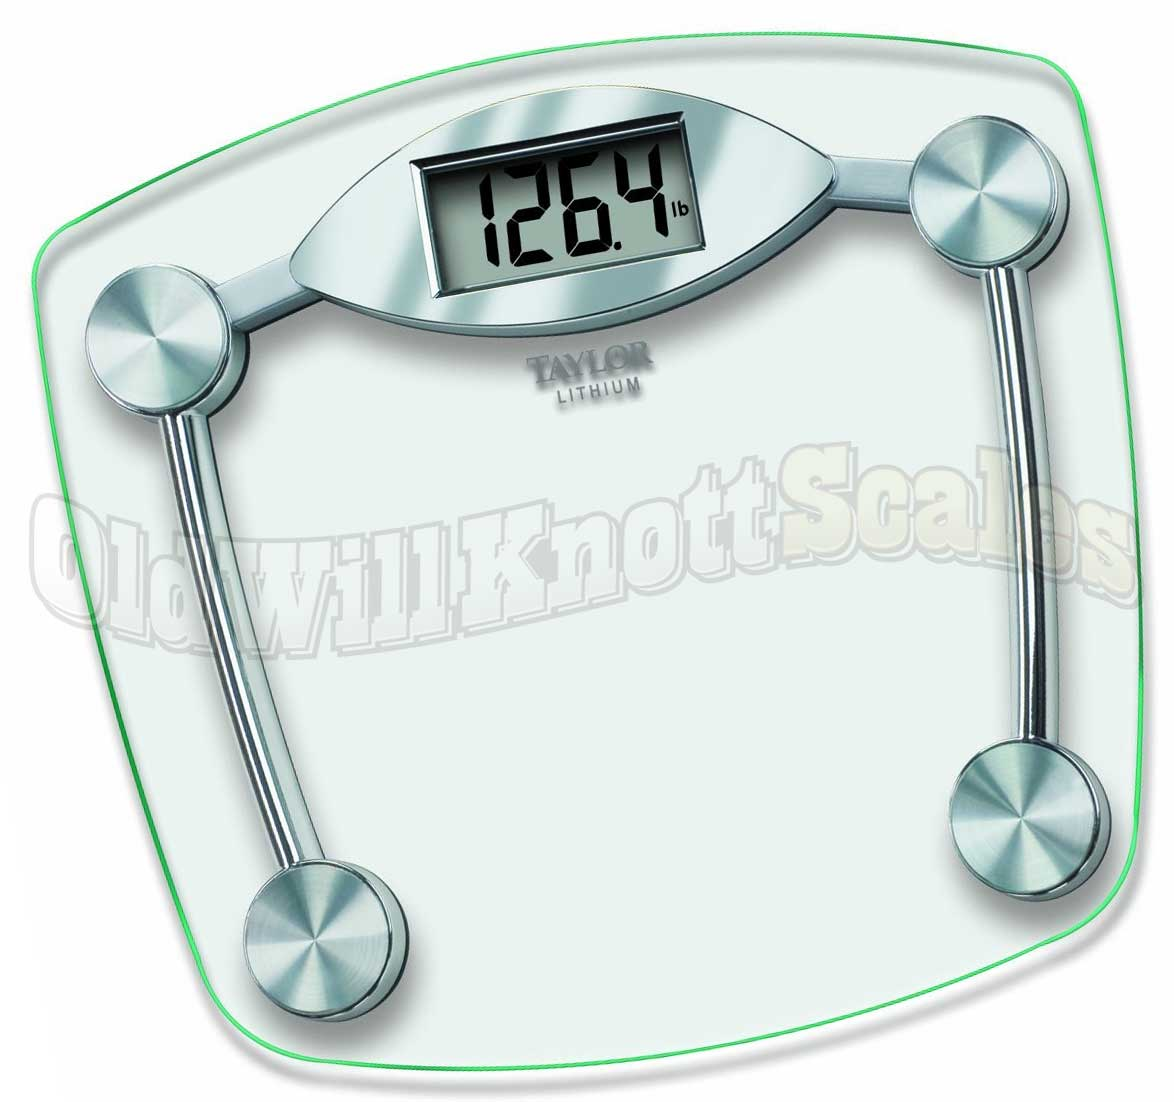 Batteries for bathroom scales - Taylor 7506